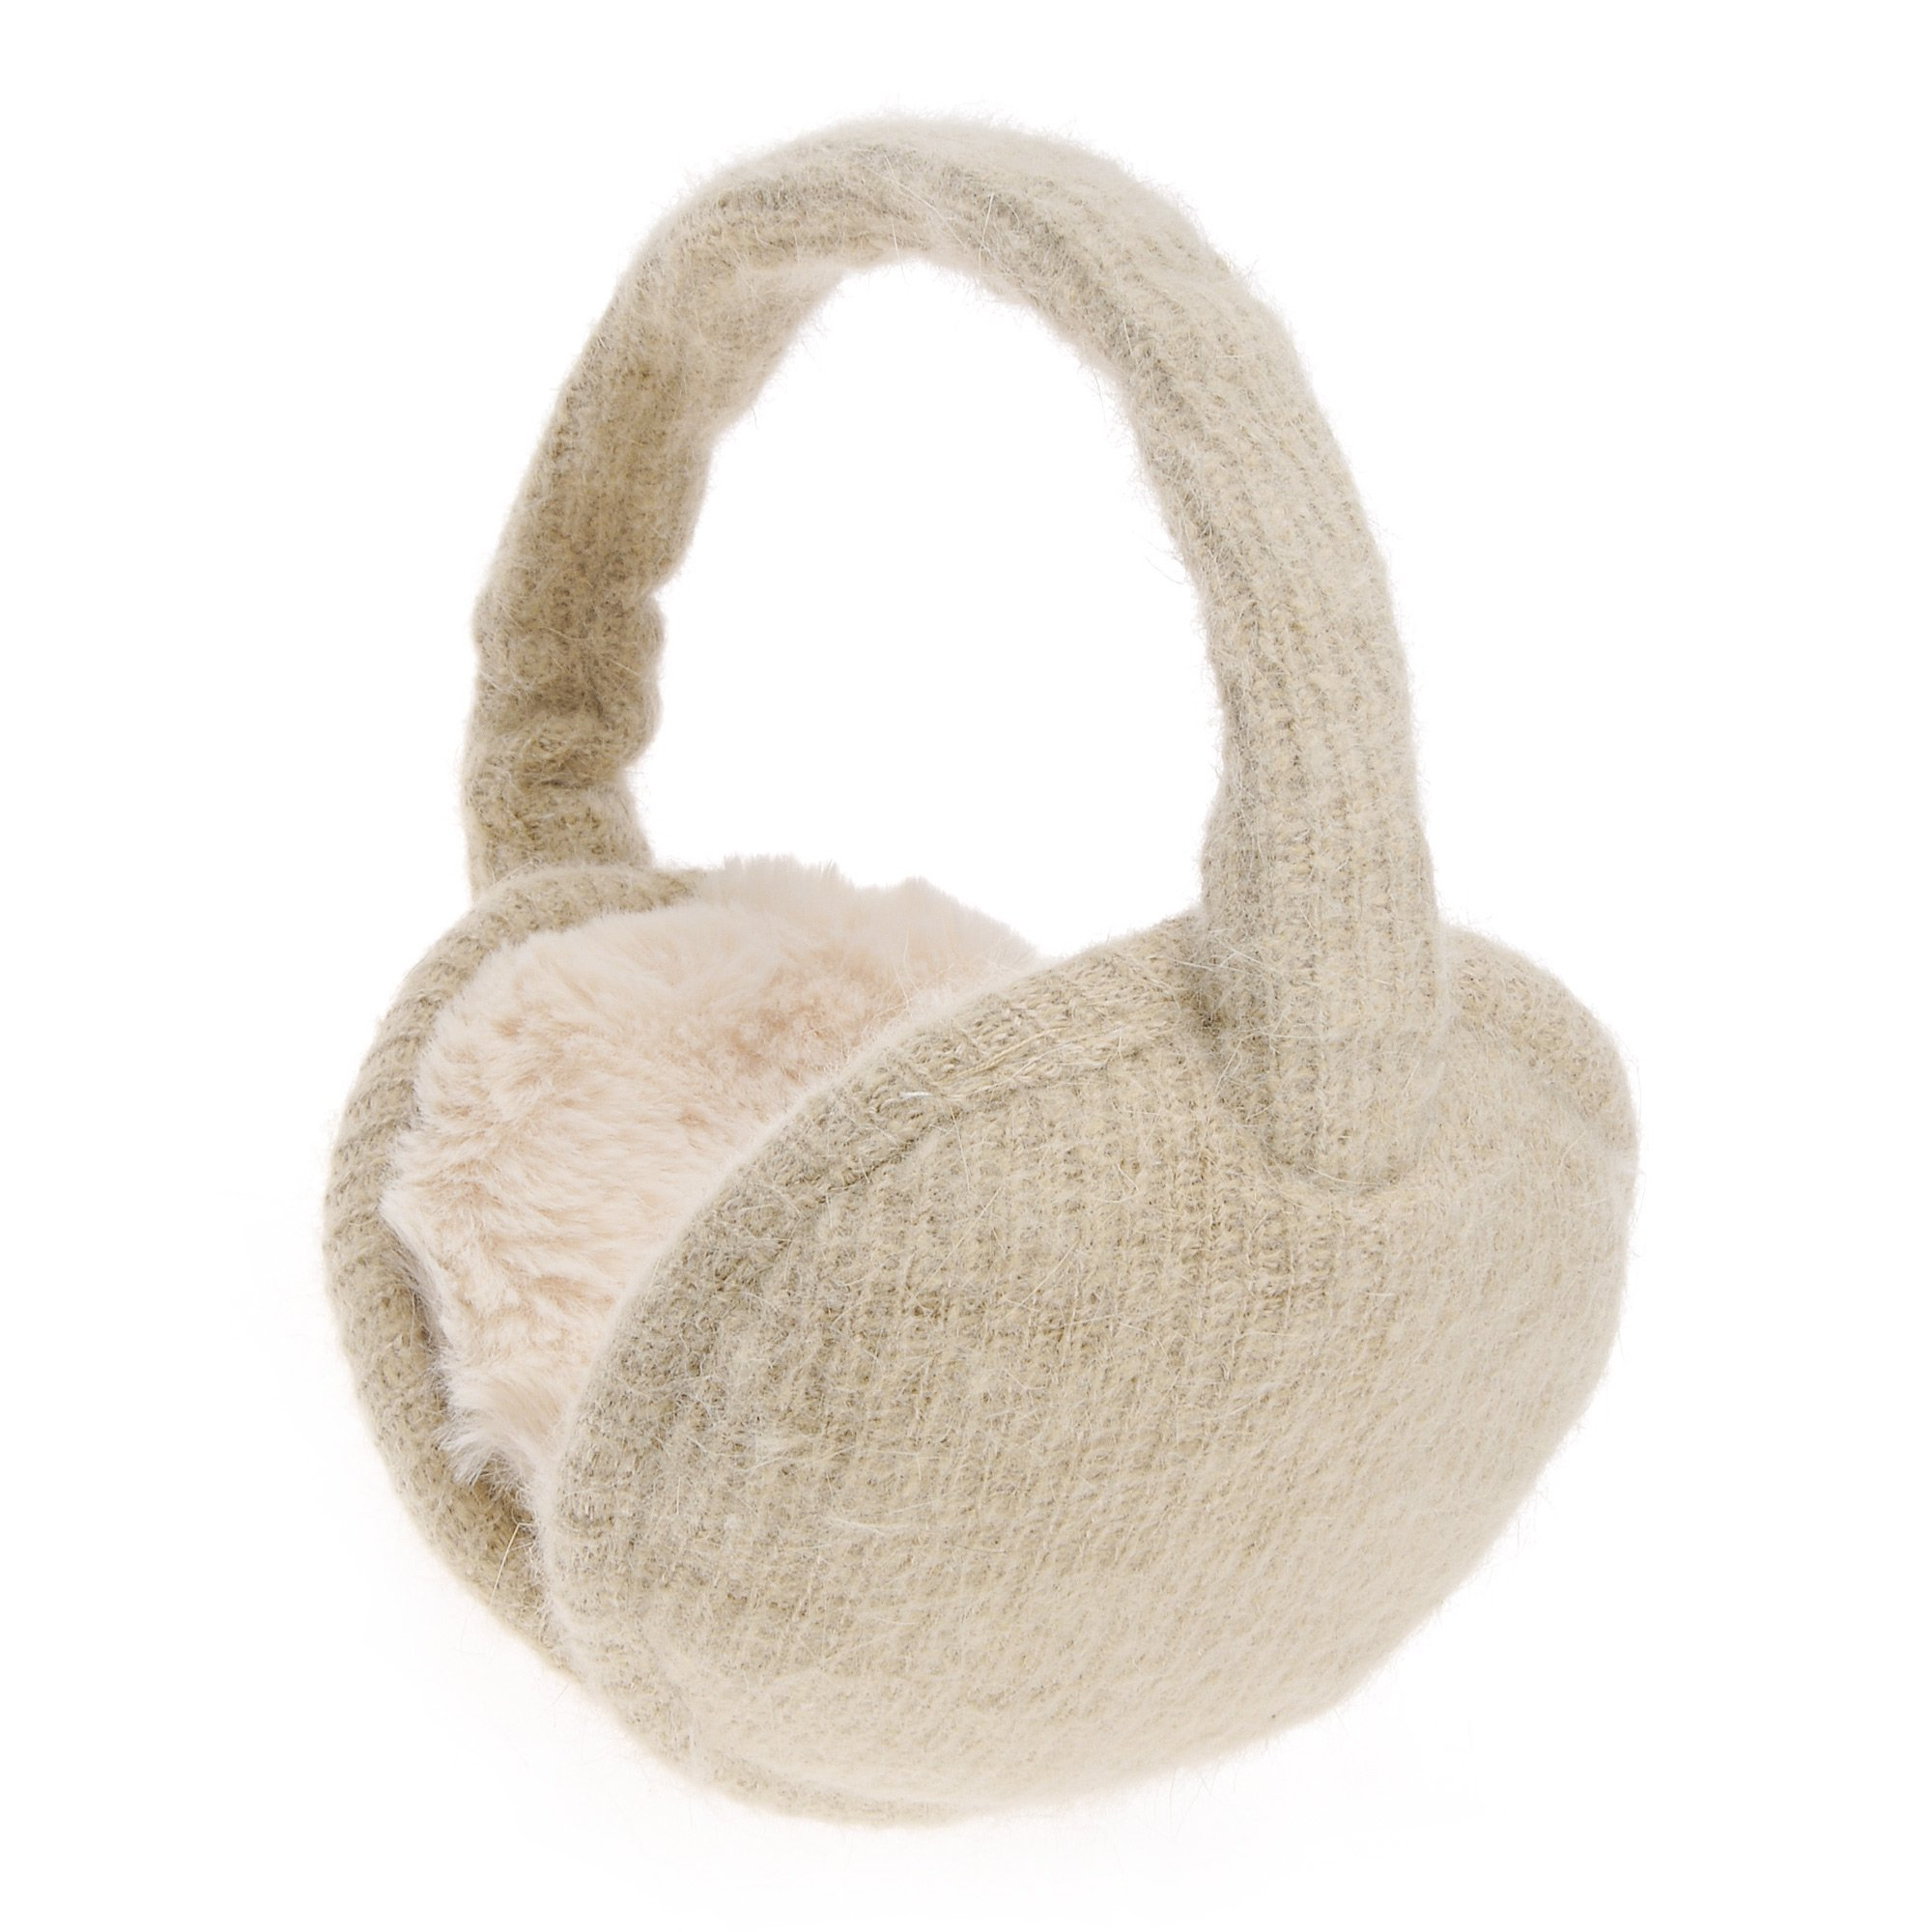 2019 Winter Warm Earmuffs Knitted Children Ear Muffs For Boy Earmuffs For Girls Baby Gift Ear Warmers Chills And Pains Men's Earmuffs